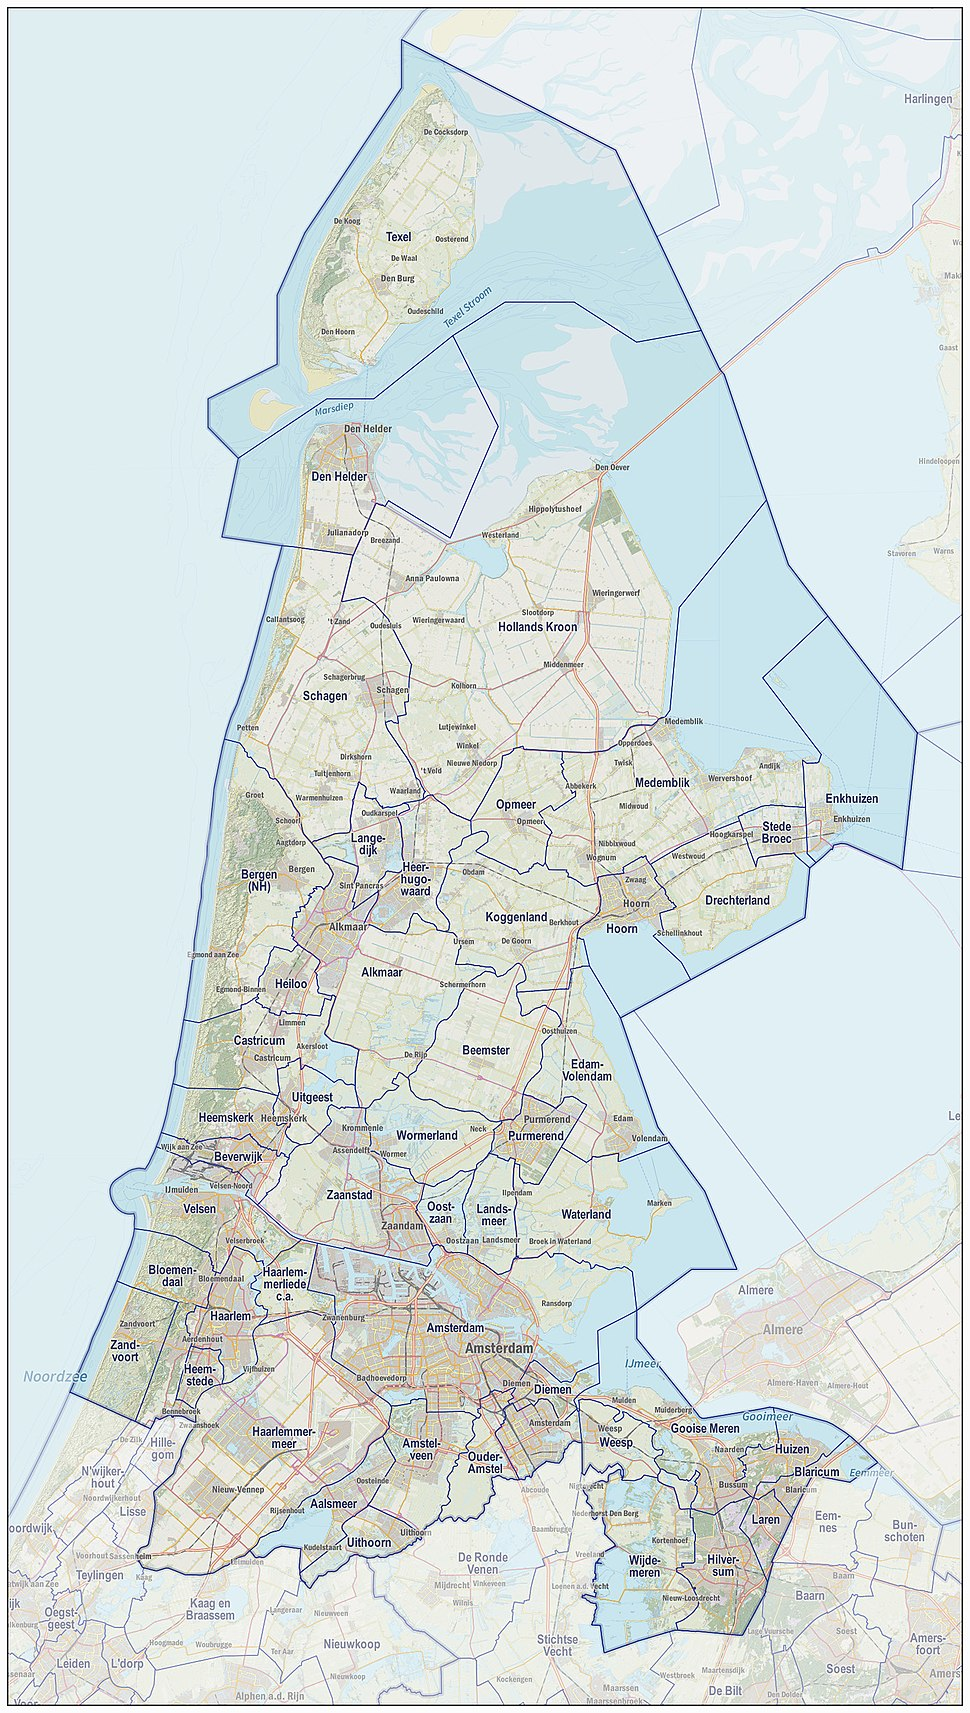 2016-P07-Noord-Holland